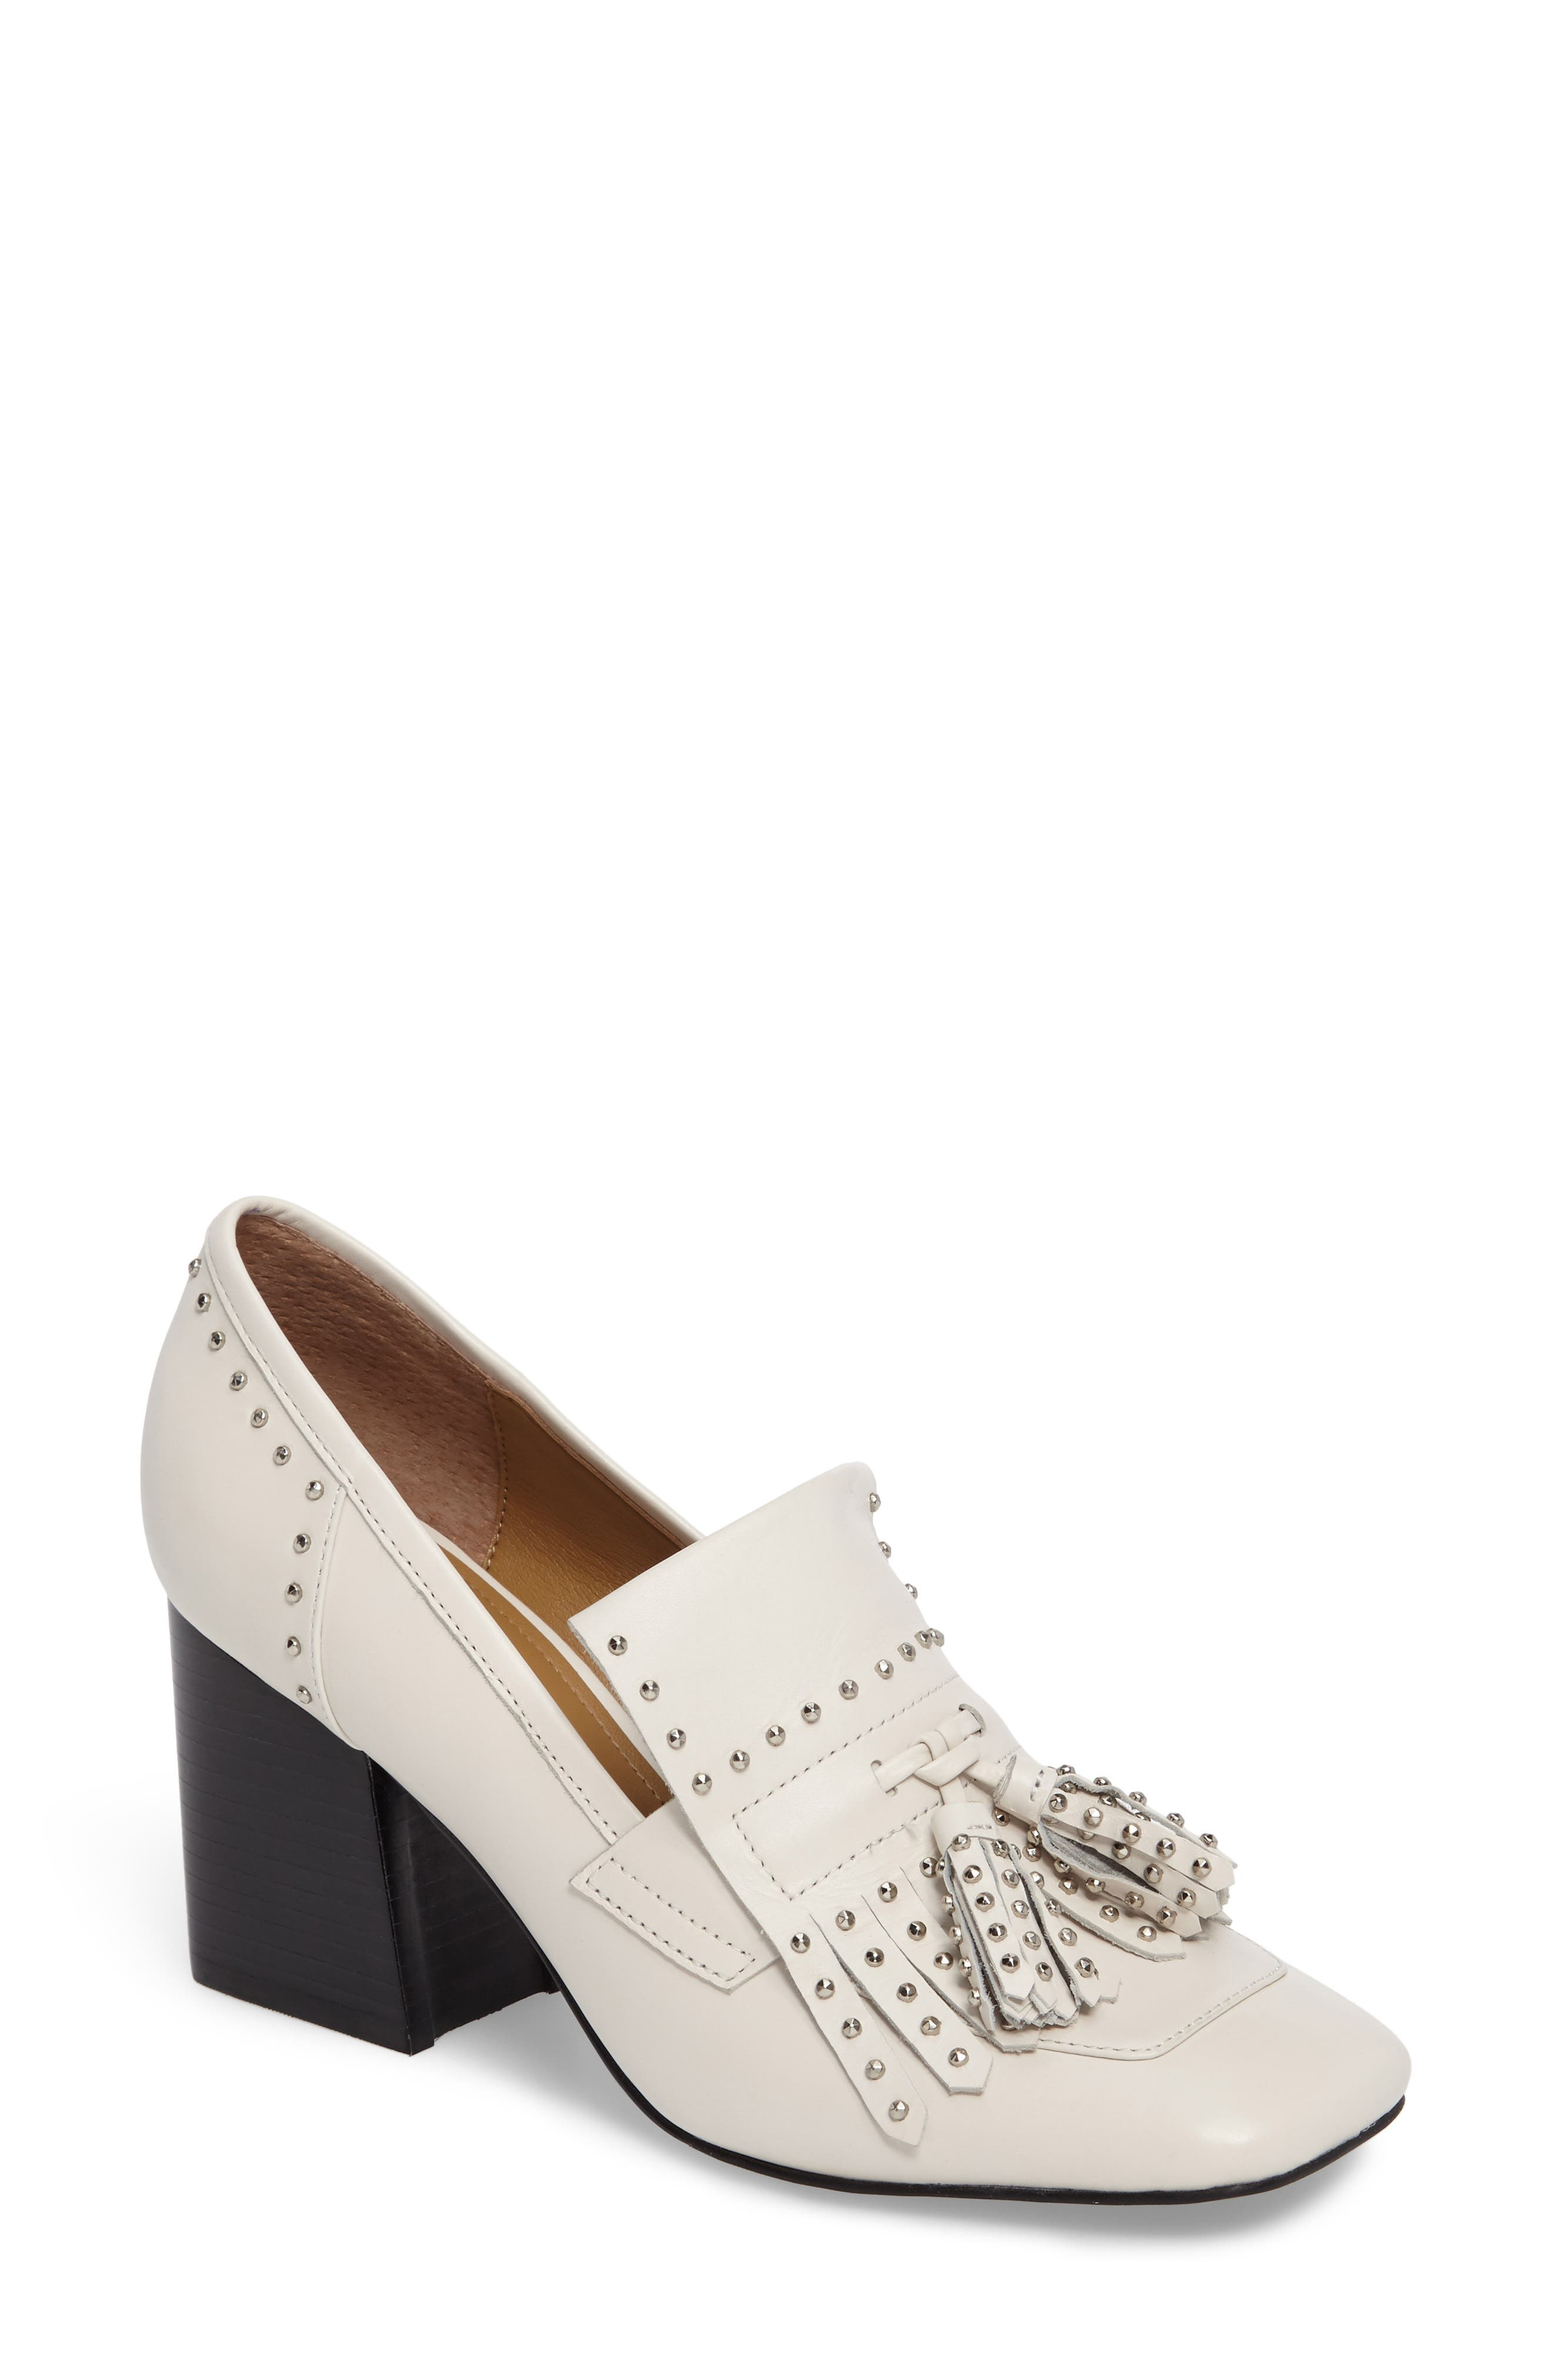 Mellie Fringe Pump,                             Main thumbnail 1, color,                             Ivory Leather